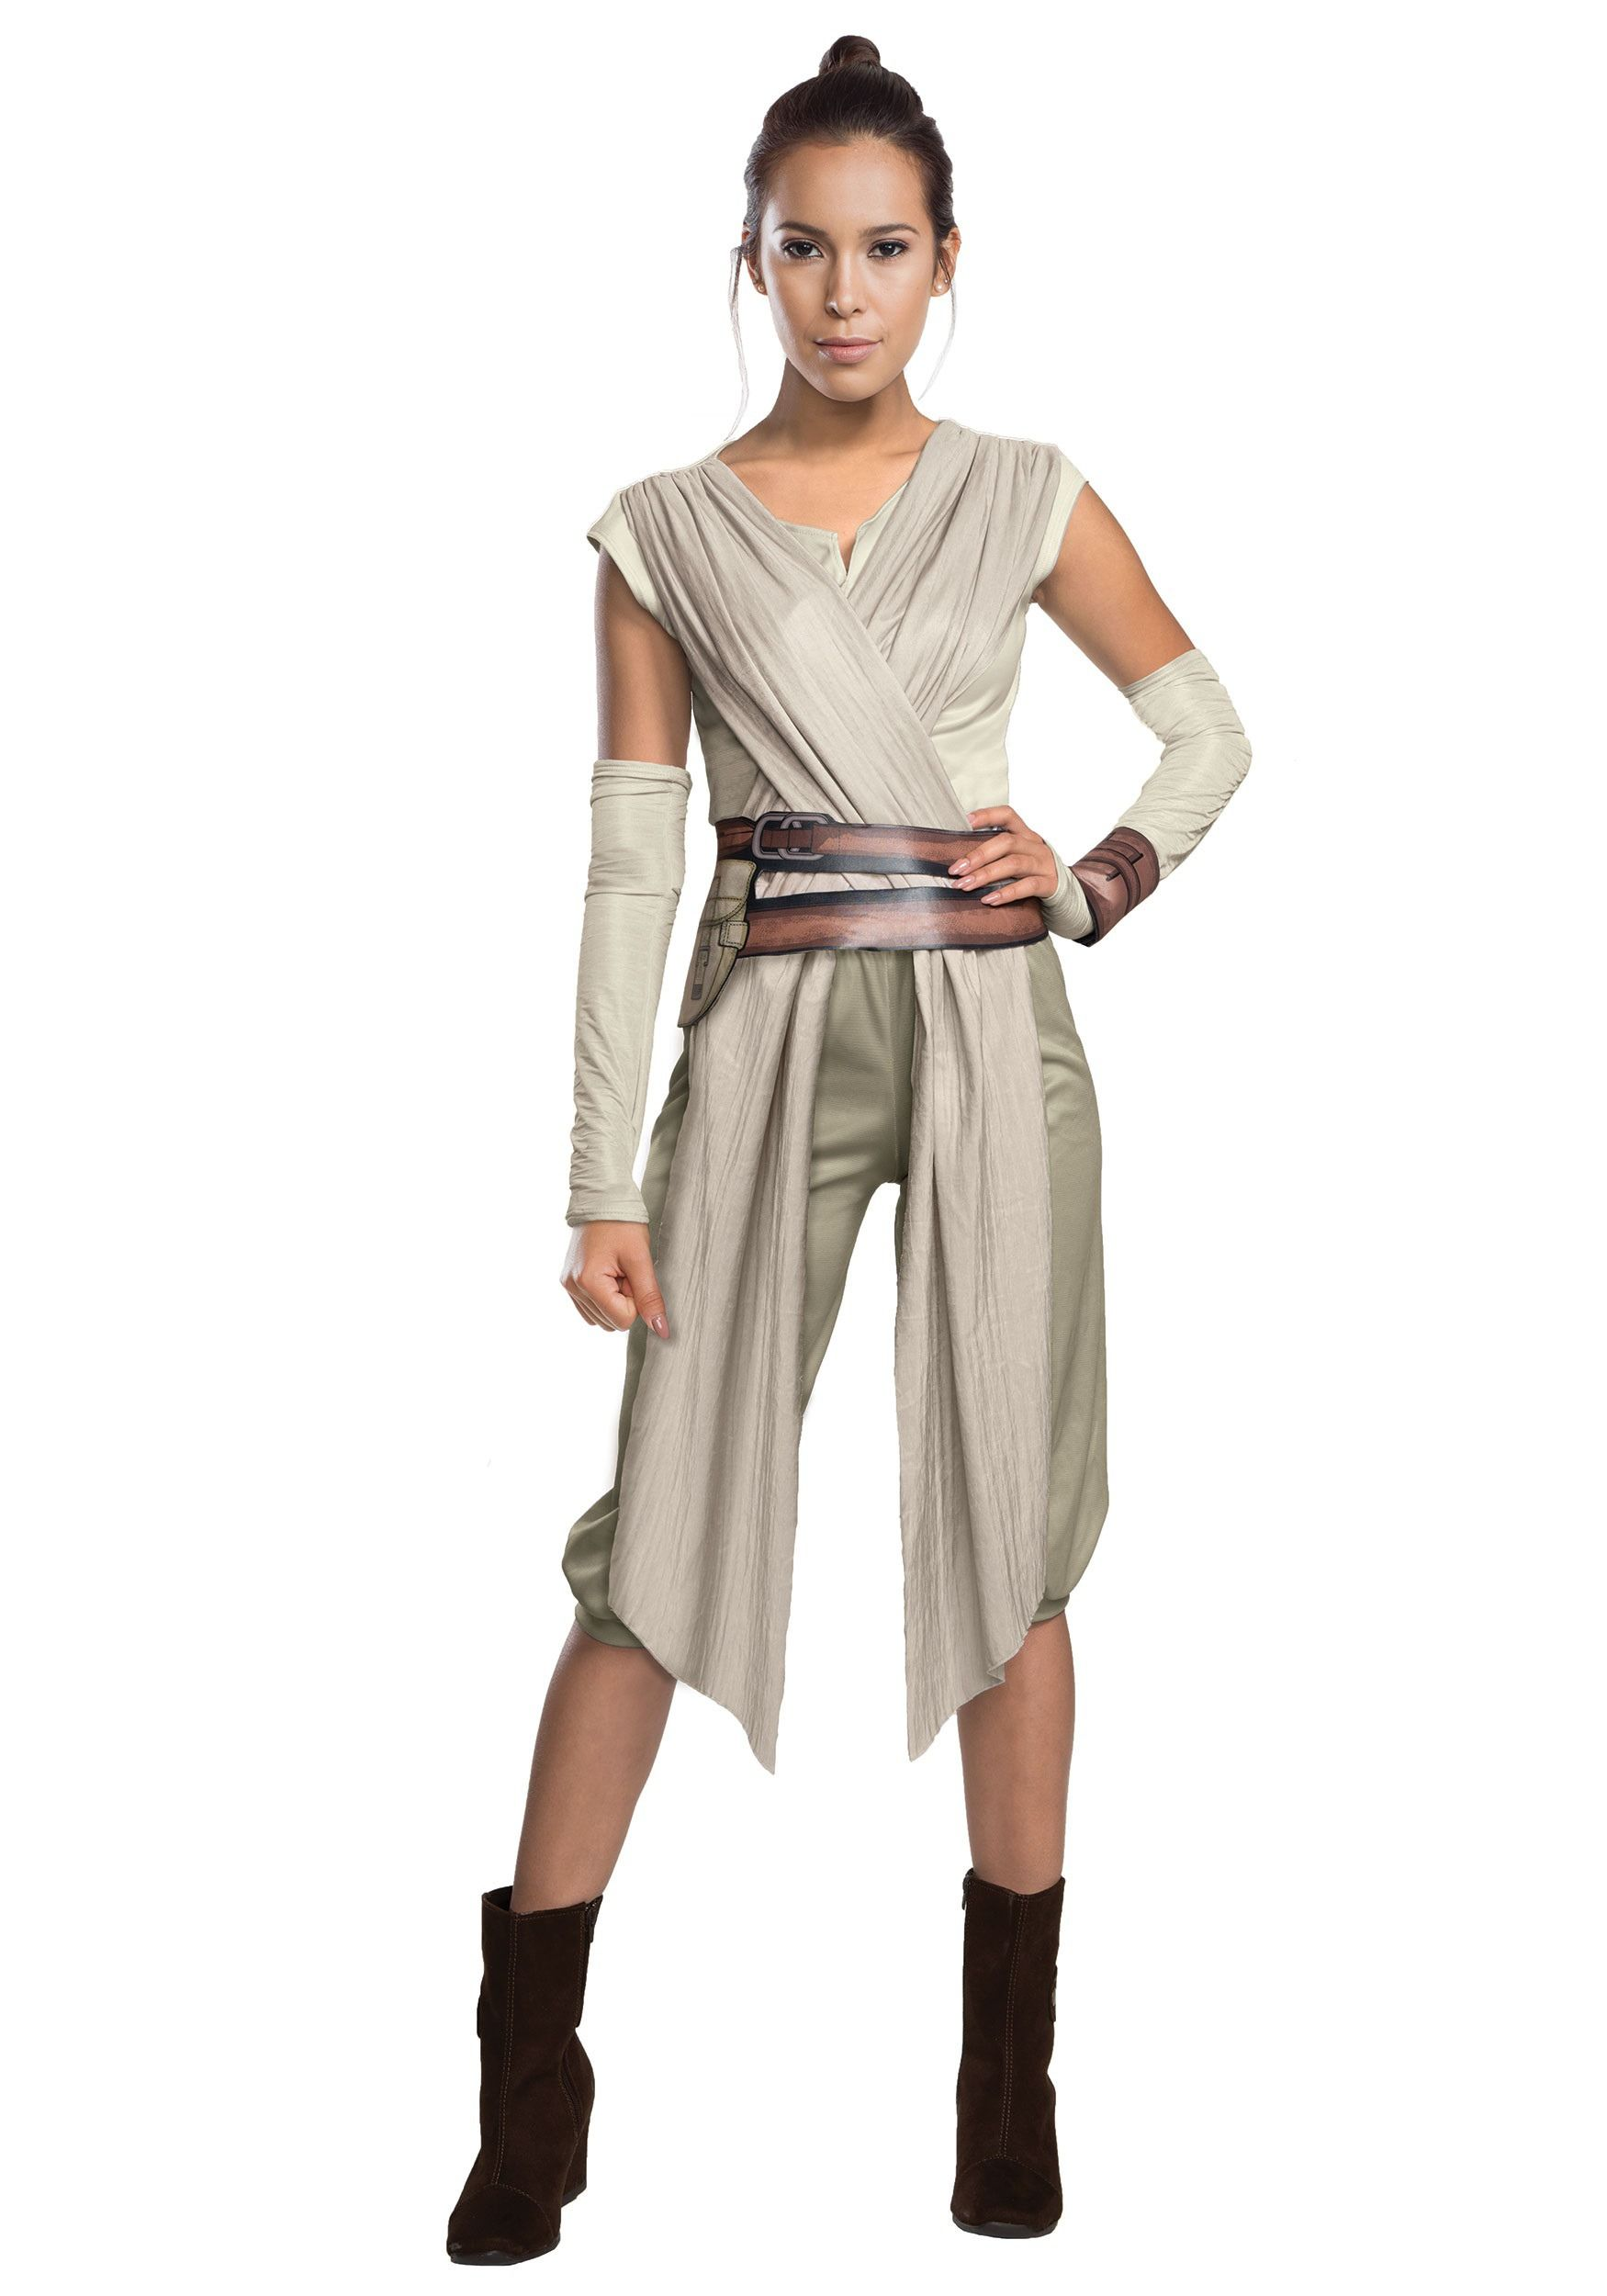 This Adult Deluxe Star Wars Ep. 7 Rey Costume recreates the look ...